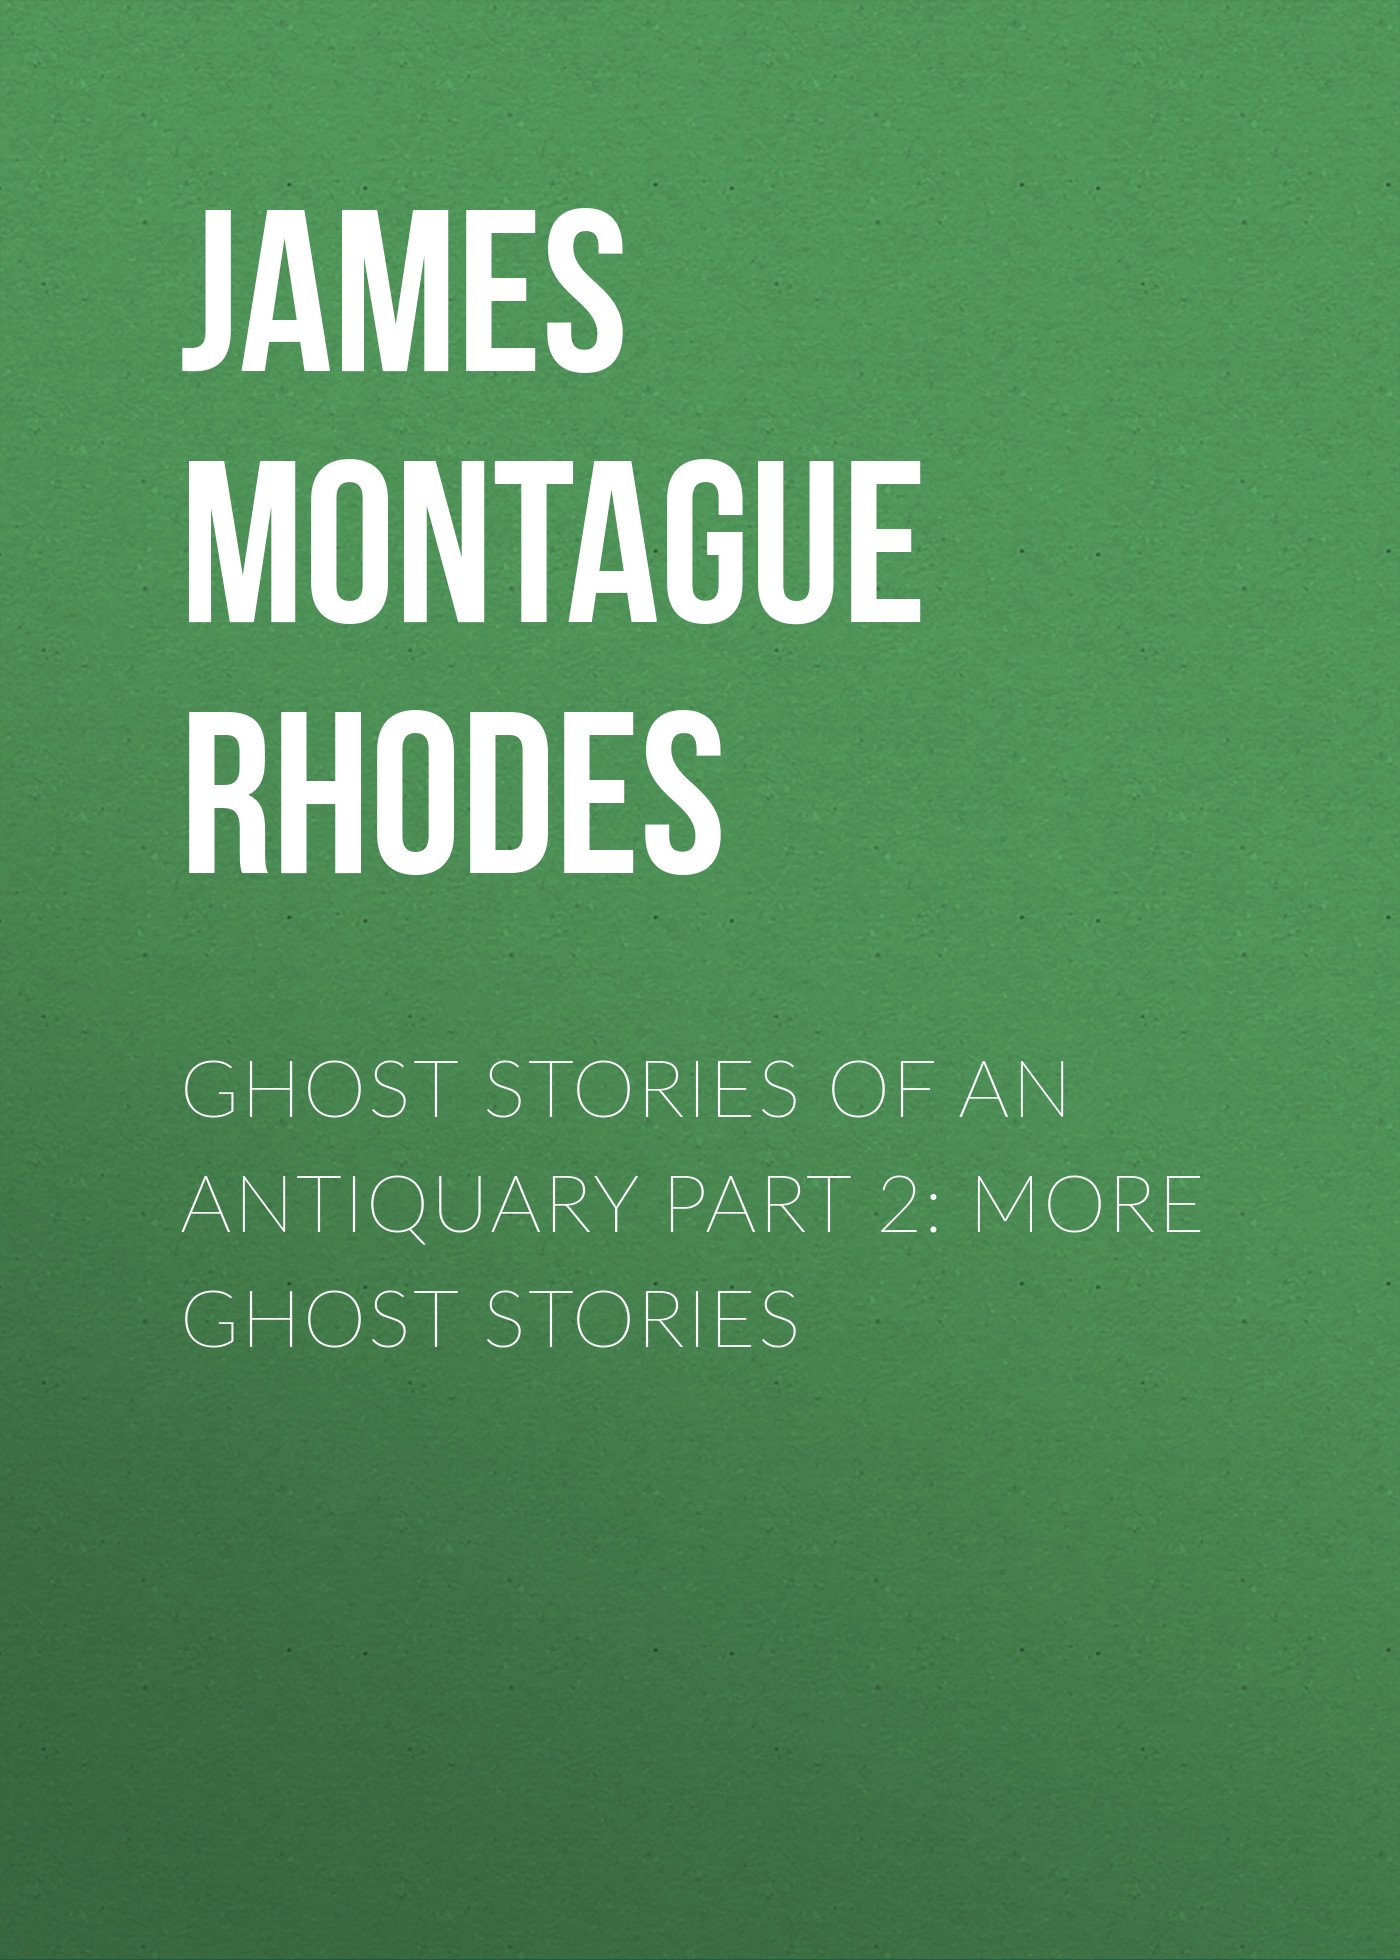 James Montague Rhodes Ghost Stories of an Antiquary Part 2: More Ghost Stories more stories we tell